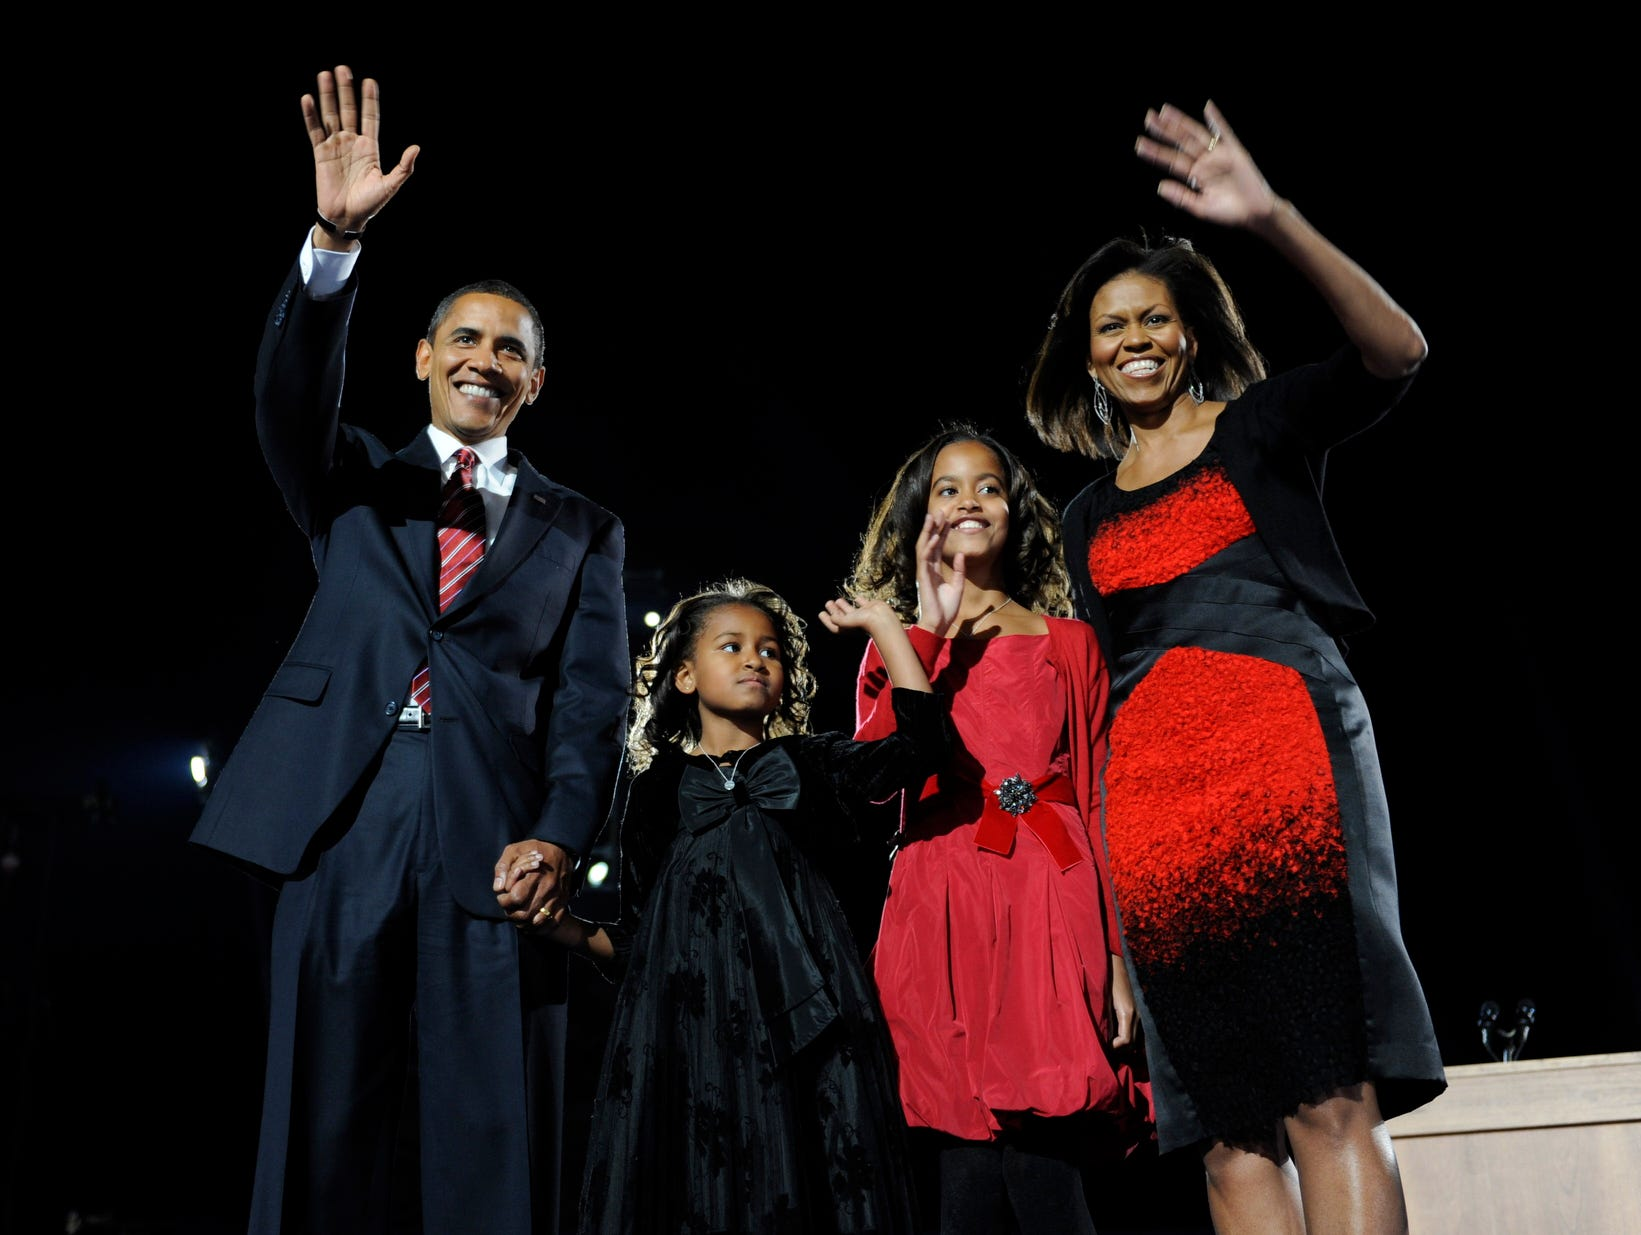 11/4/08 10:58:03 PM -- Chicago, IL, U.S.A  -- Democratic Presidential candidate Illinois Senator Barack Obama celebrates his victory over Republican nominee John McCain with his wife Michelle Obama and daughters Sasha and Malia Obama during election night victory celebration at Chicago's Grant Park. --    Photo by Jack Gruber, USA TODAY Staff  ORG XMIT: JG 35342  11/3/2008  (Via MerlinFTP Drop)